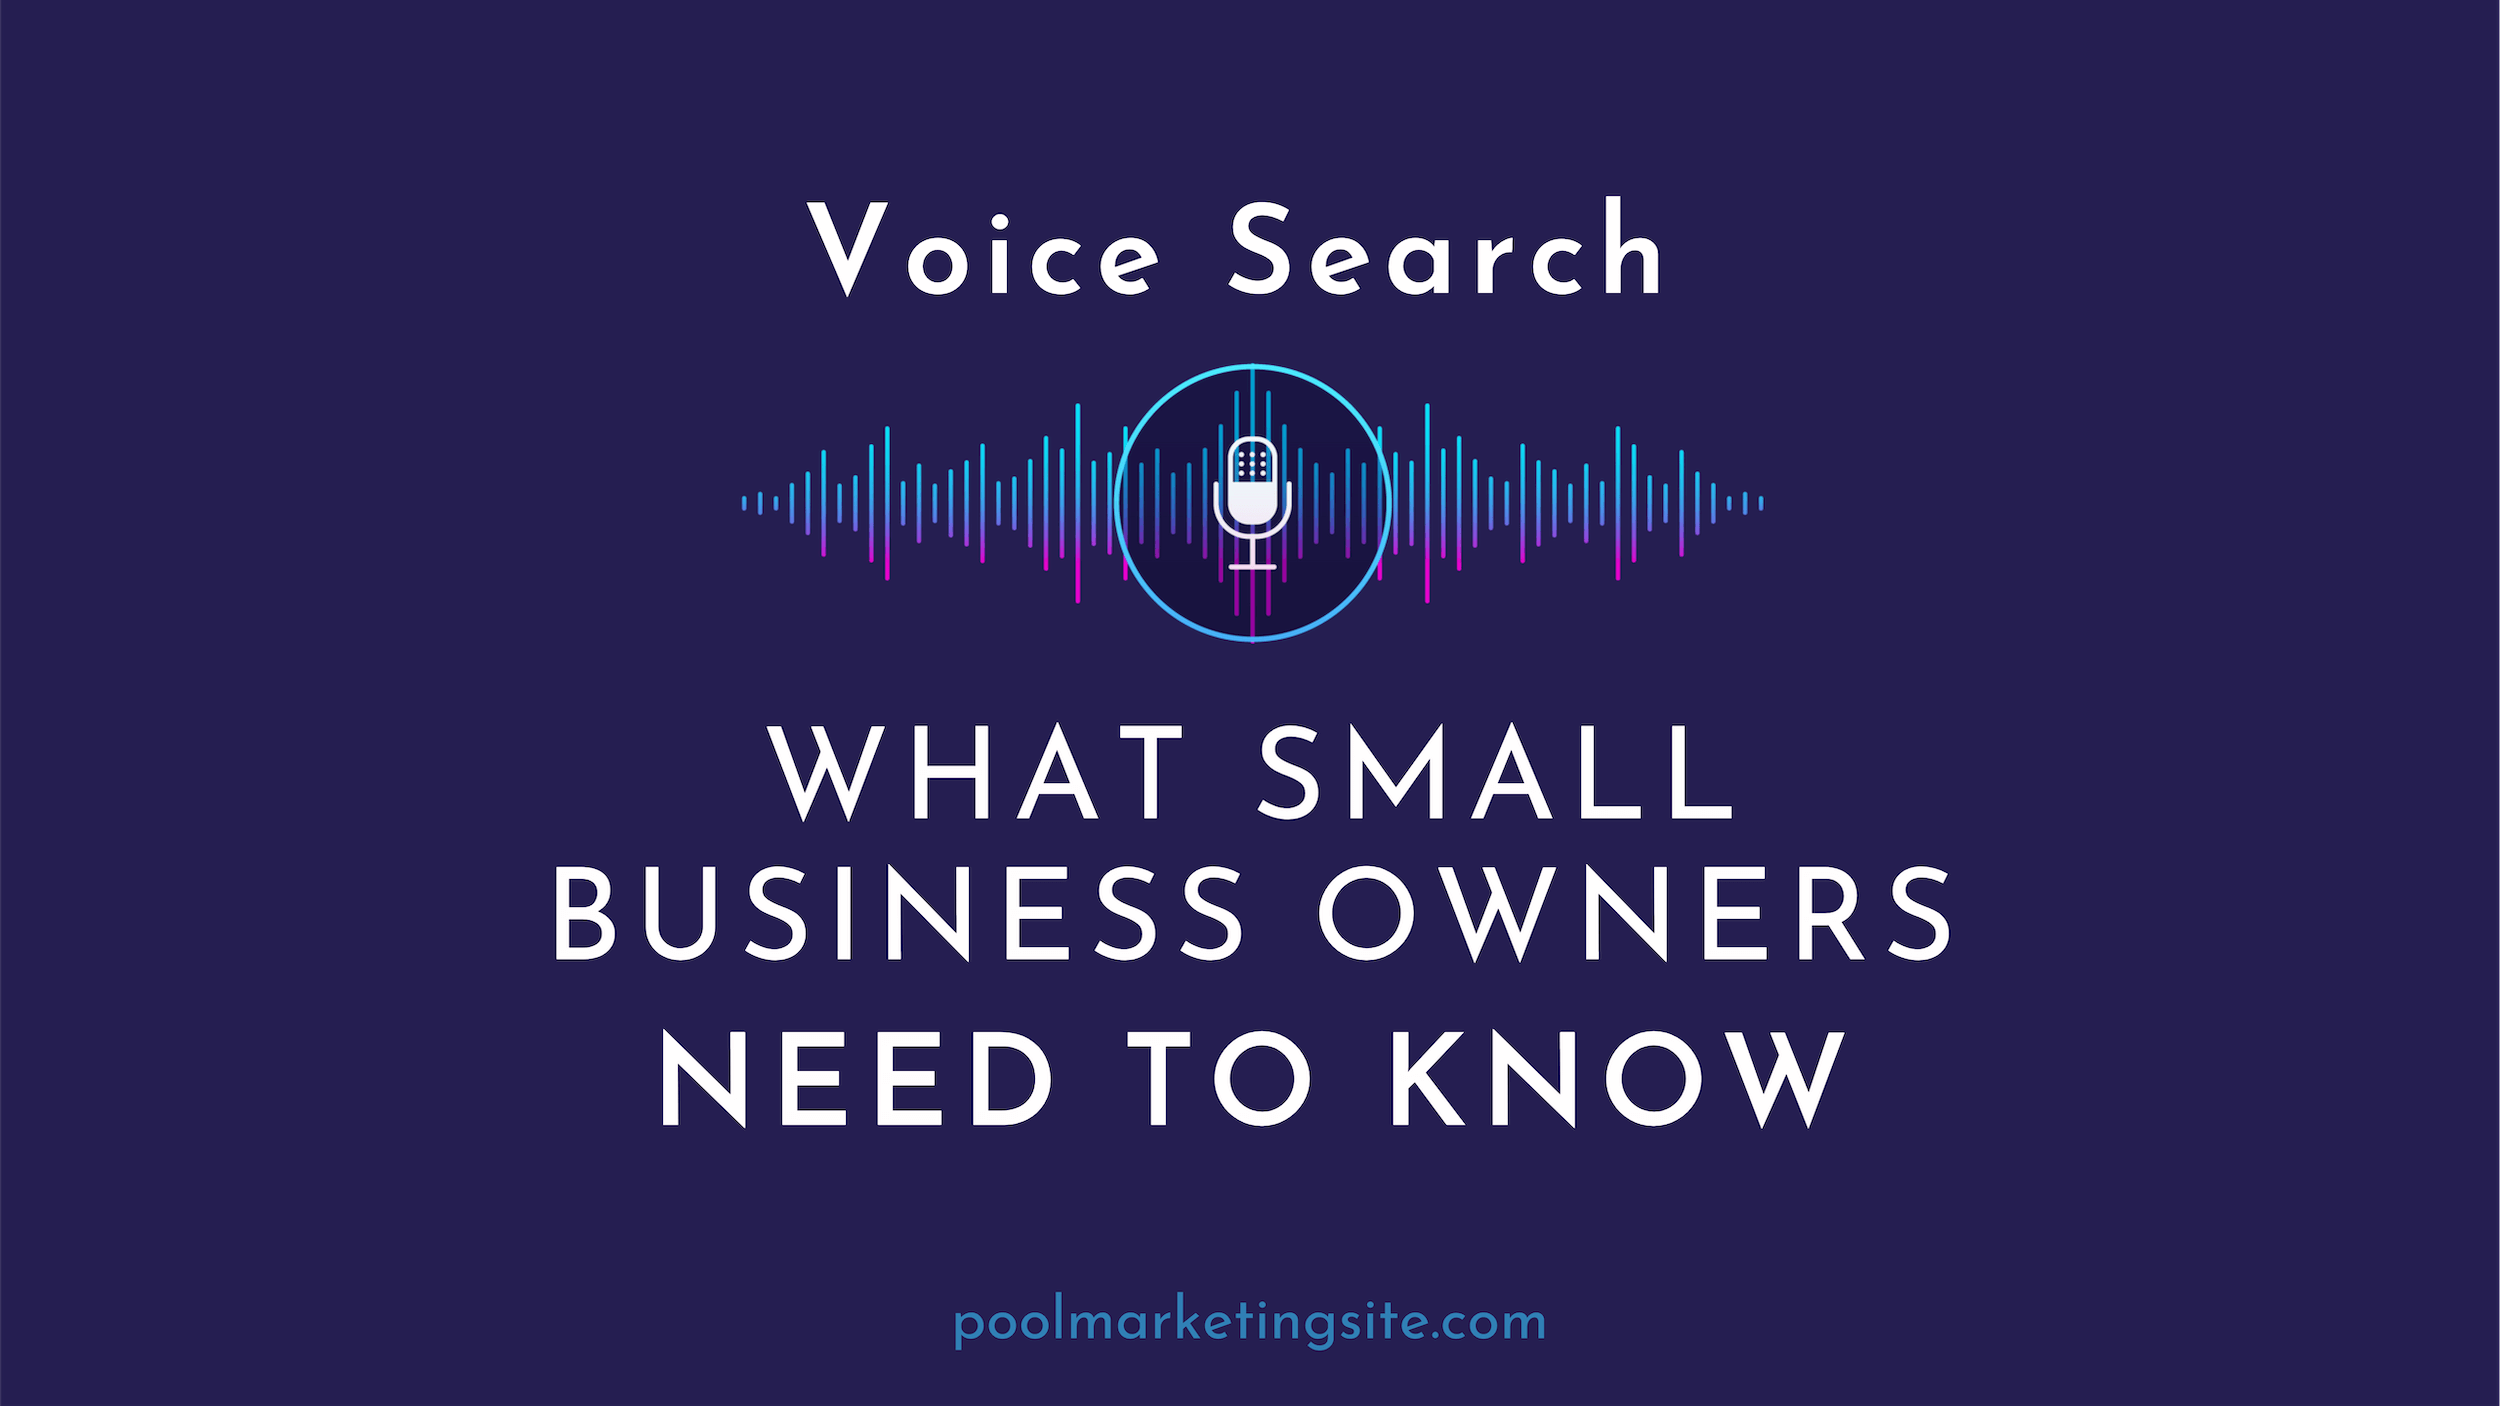 Voice Search: What Small Business Owners Need to Know